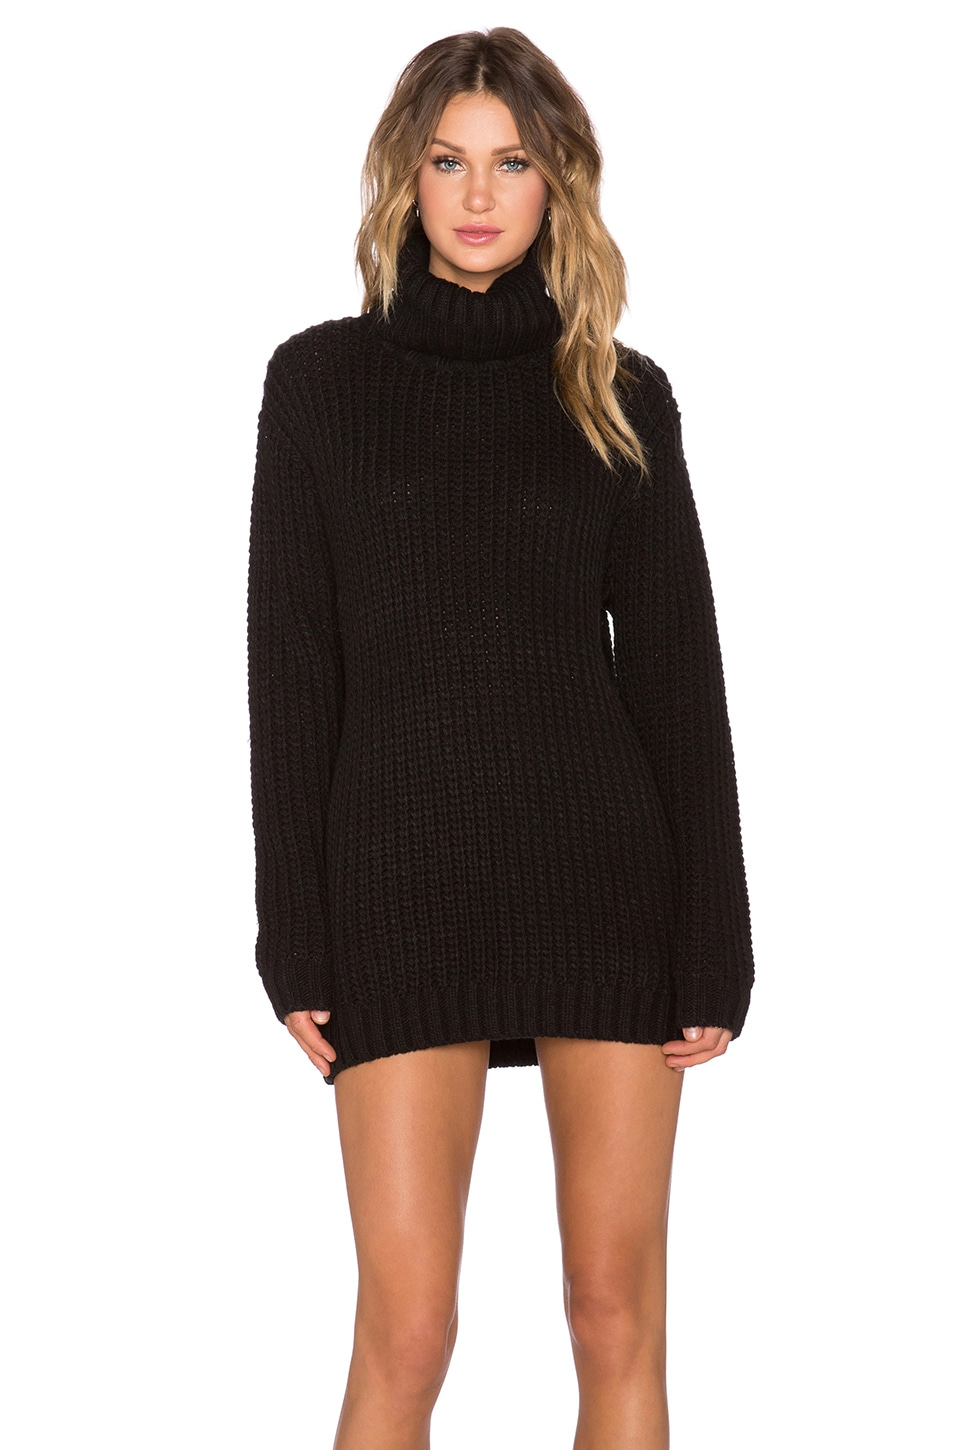 MINKPINK Another Night Dress in Black